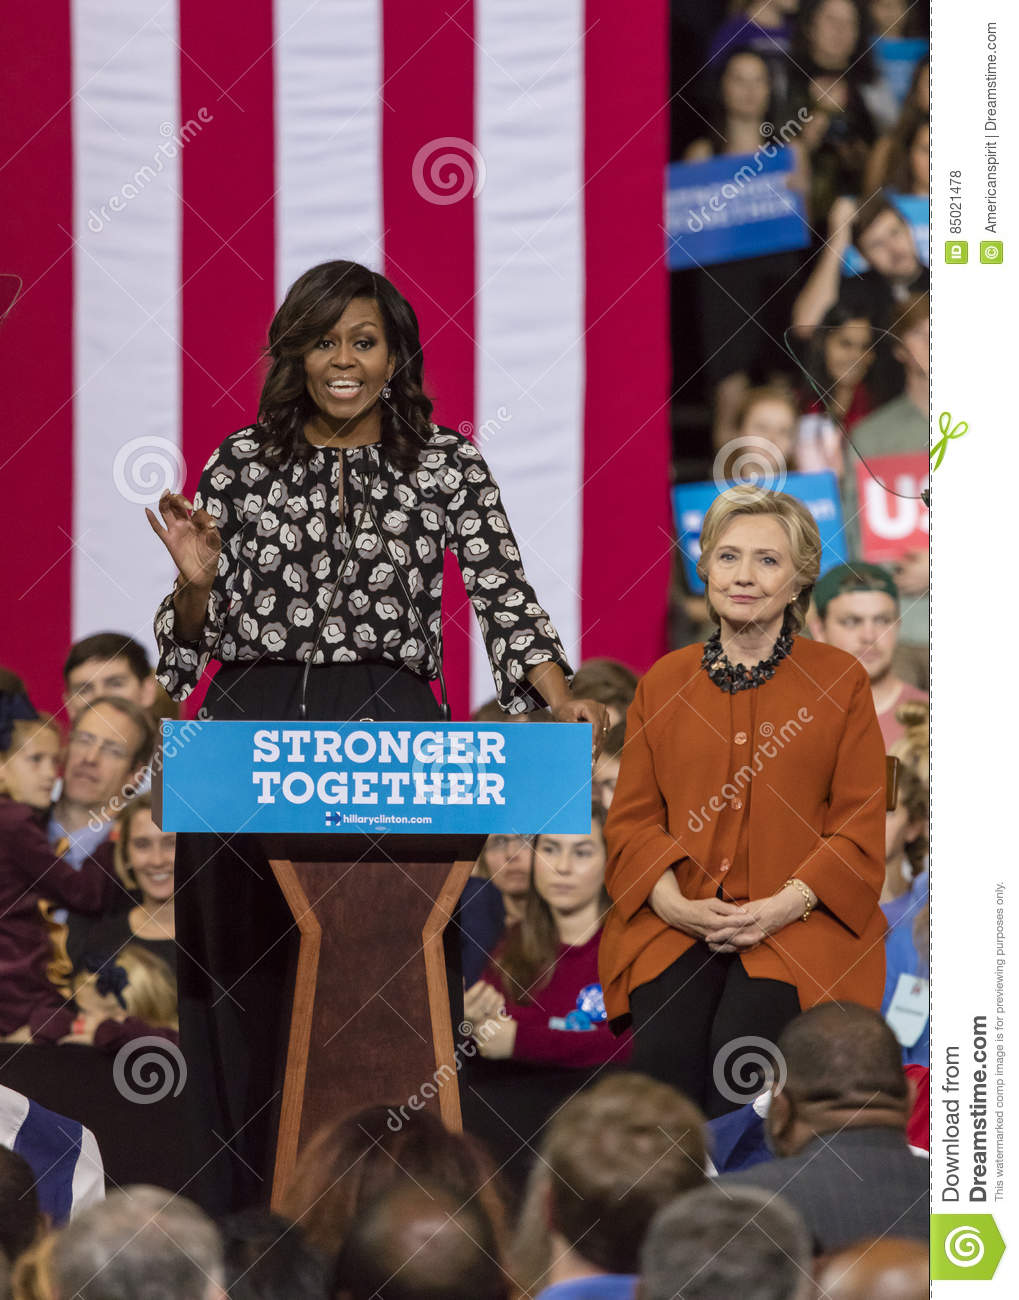 WINSTON-SALEM, NC - OCTOBER 27 , 2016: First Lady Michelle Obama introduces Democratic presidential candidate Hillary Clinton at a